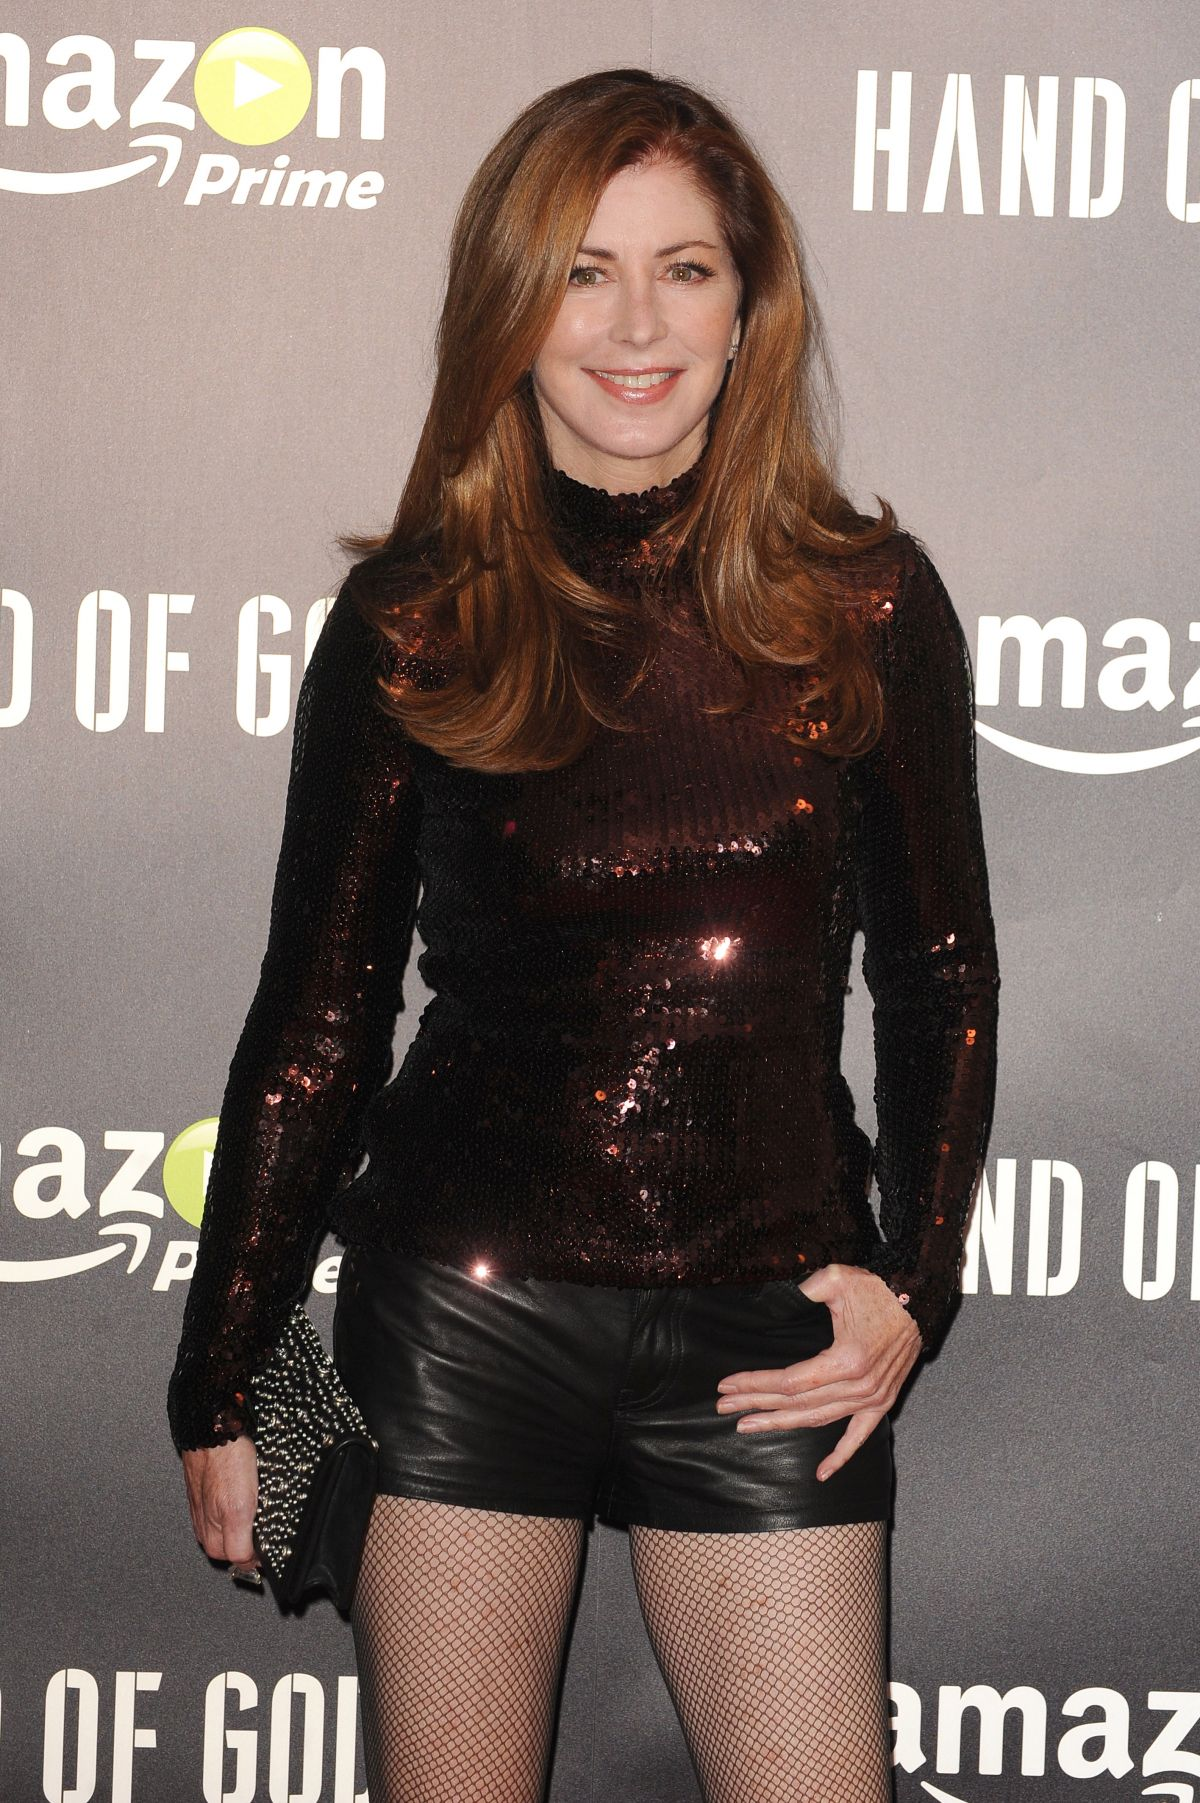 dana delany 2016dana delany 2016, dana delany 2017, dana delany vk, dana delany desperate housewives, dana delany china beach, dana delany films, dana delany sister, dana delany desperate, dana delany photos, dana delany фото, dana delany pasadena, dana delany and jennifer beals, dana delany religion, dana delany nathan fillion, dana delany emmy, dana delany looks, dana delany music, dana delany new series, dana delany instagram, dana delany body of proof